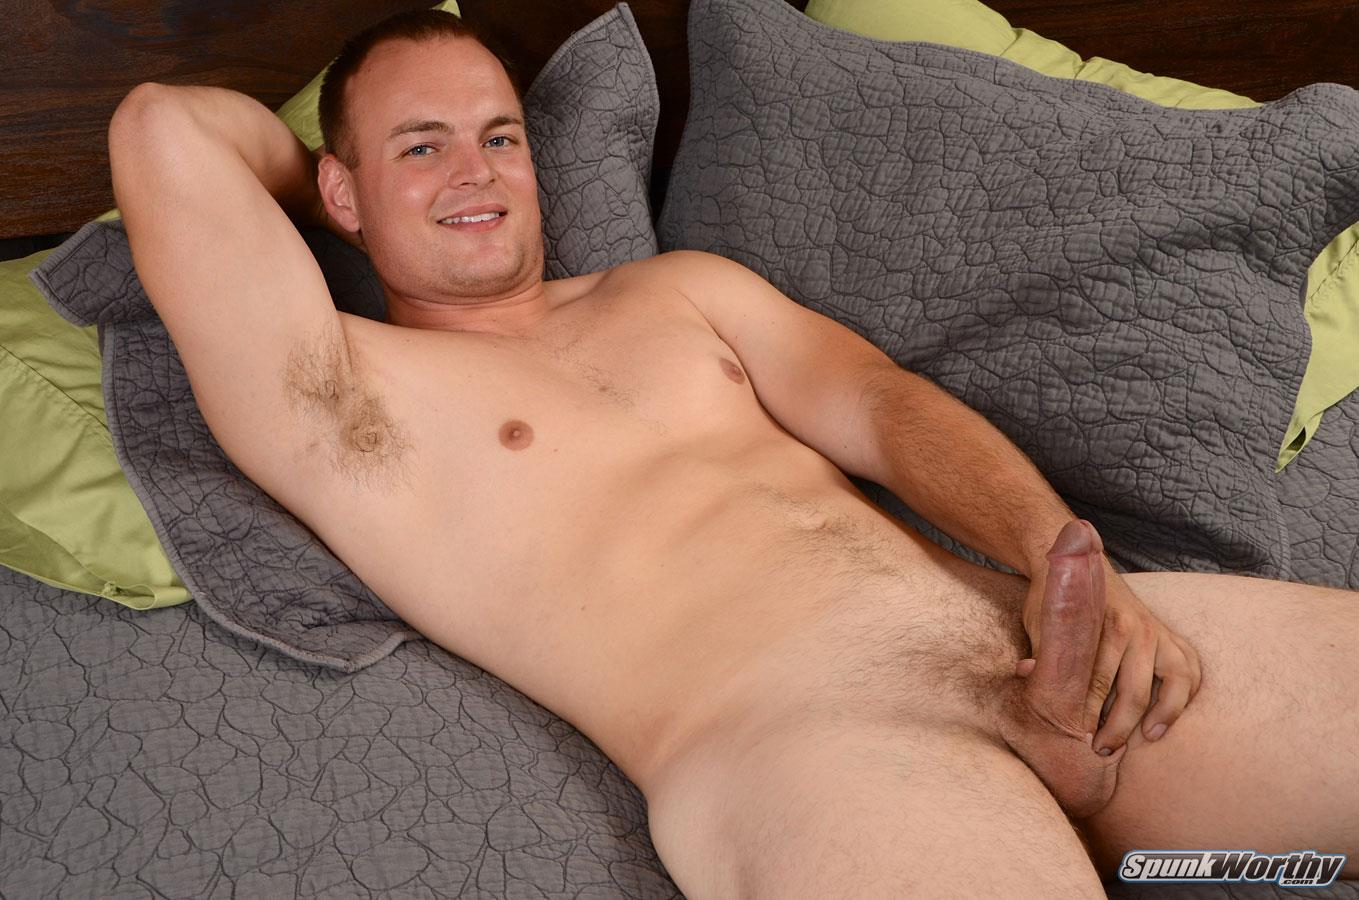 SpunkWorthy-Cole-Beefy-Young-Marine-Jerking-Off-His-Big-Cock-Masturbation-Amateur-Gay-Porn-15 Amateur Beefy Straight Young Marine Jerking Off